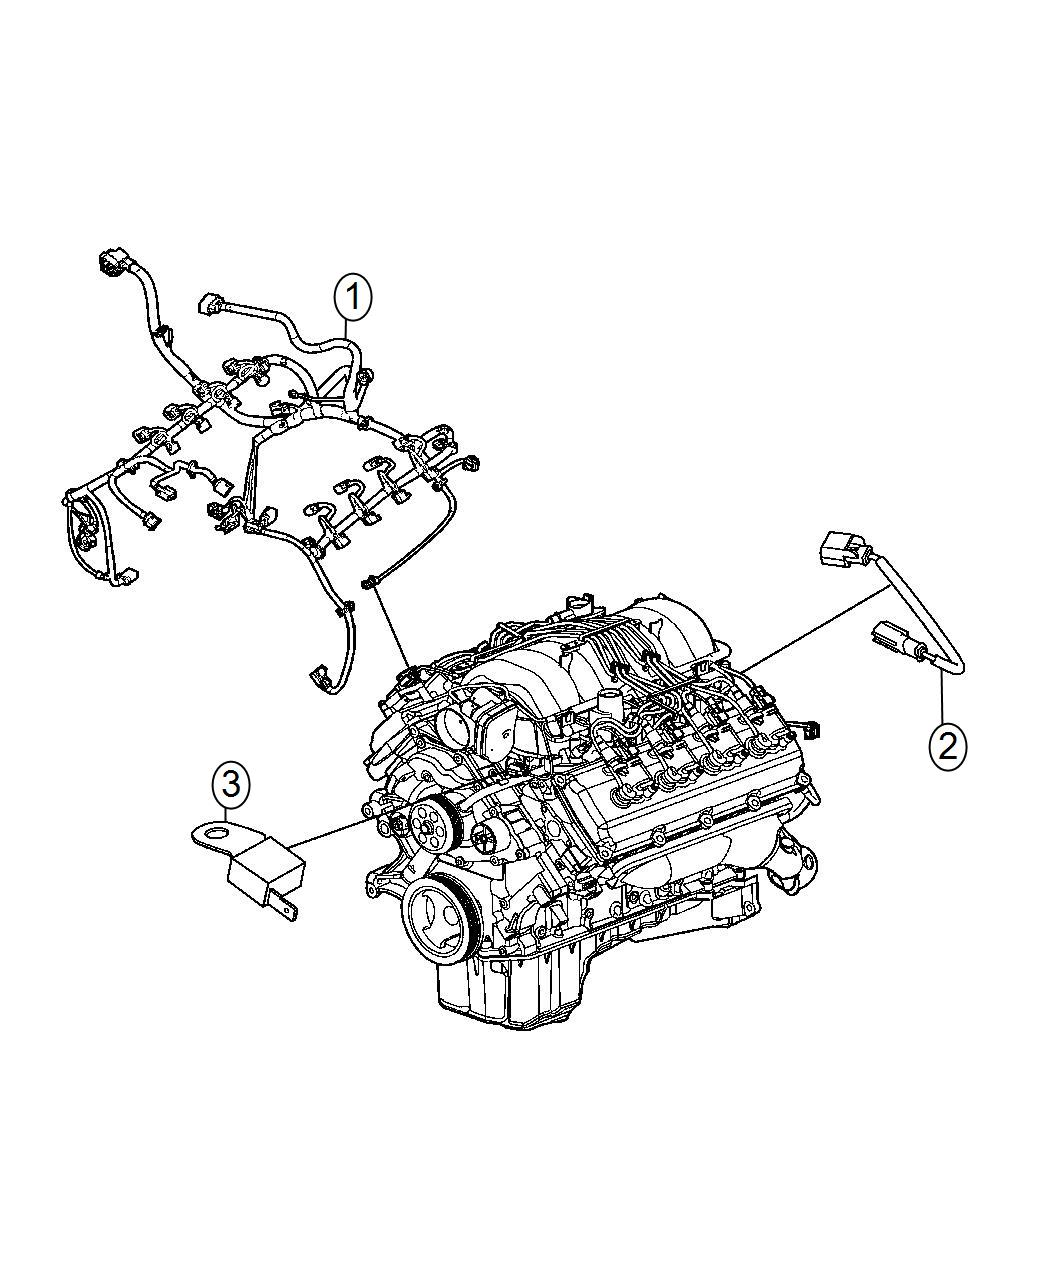 Dodge Charger Wiring Engine Gas Damping Suspension